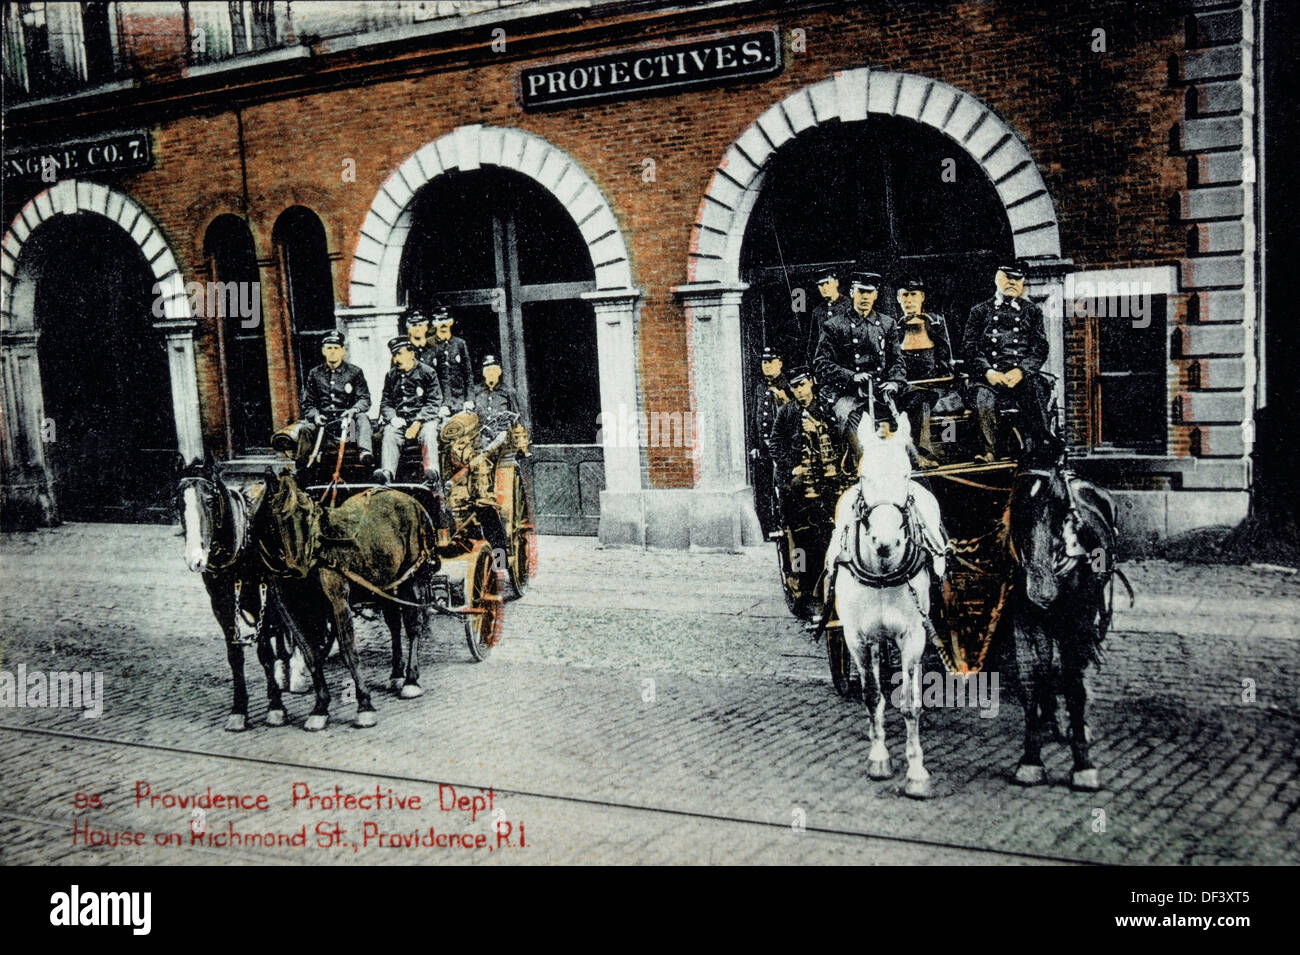 Firemen on Horse-Drawn Firetrucks in Front of Firehouse, Providence, Rhode Island, USA, Hand-Colored Photograph, 1902 - Stock Image